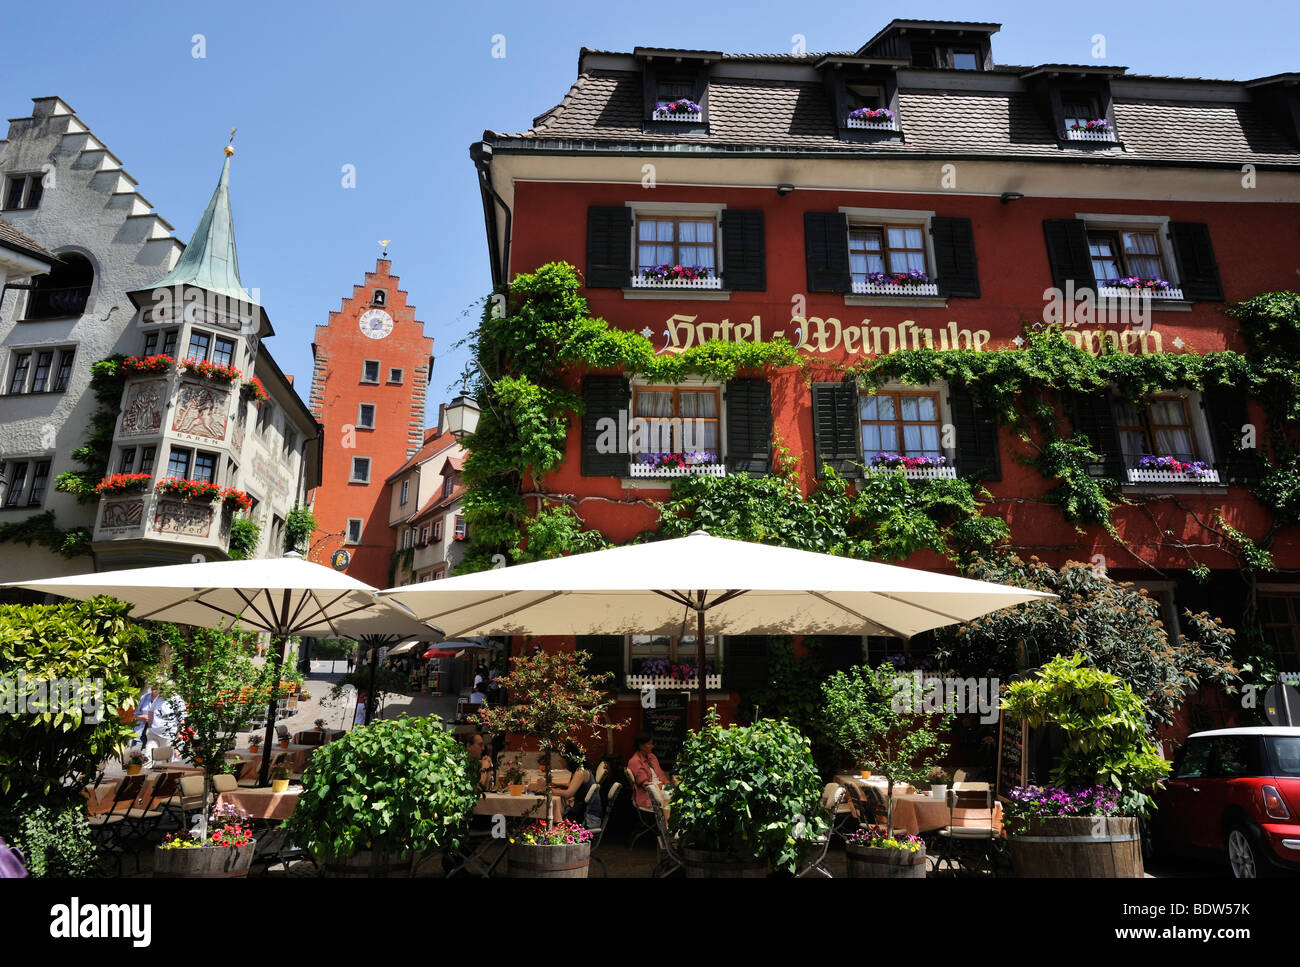 City centre of Meersburg on Lake Constance, Baden-Wurttemberg, Germany, Europe Stock Photo